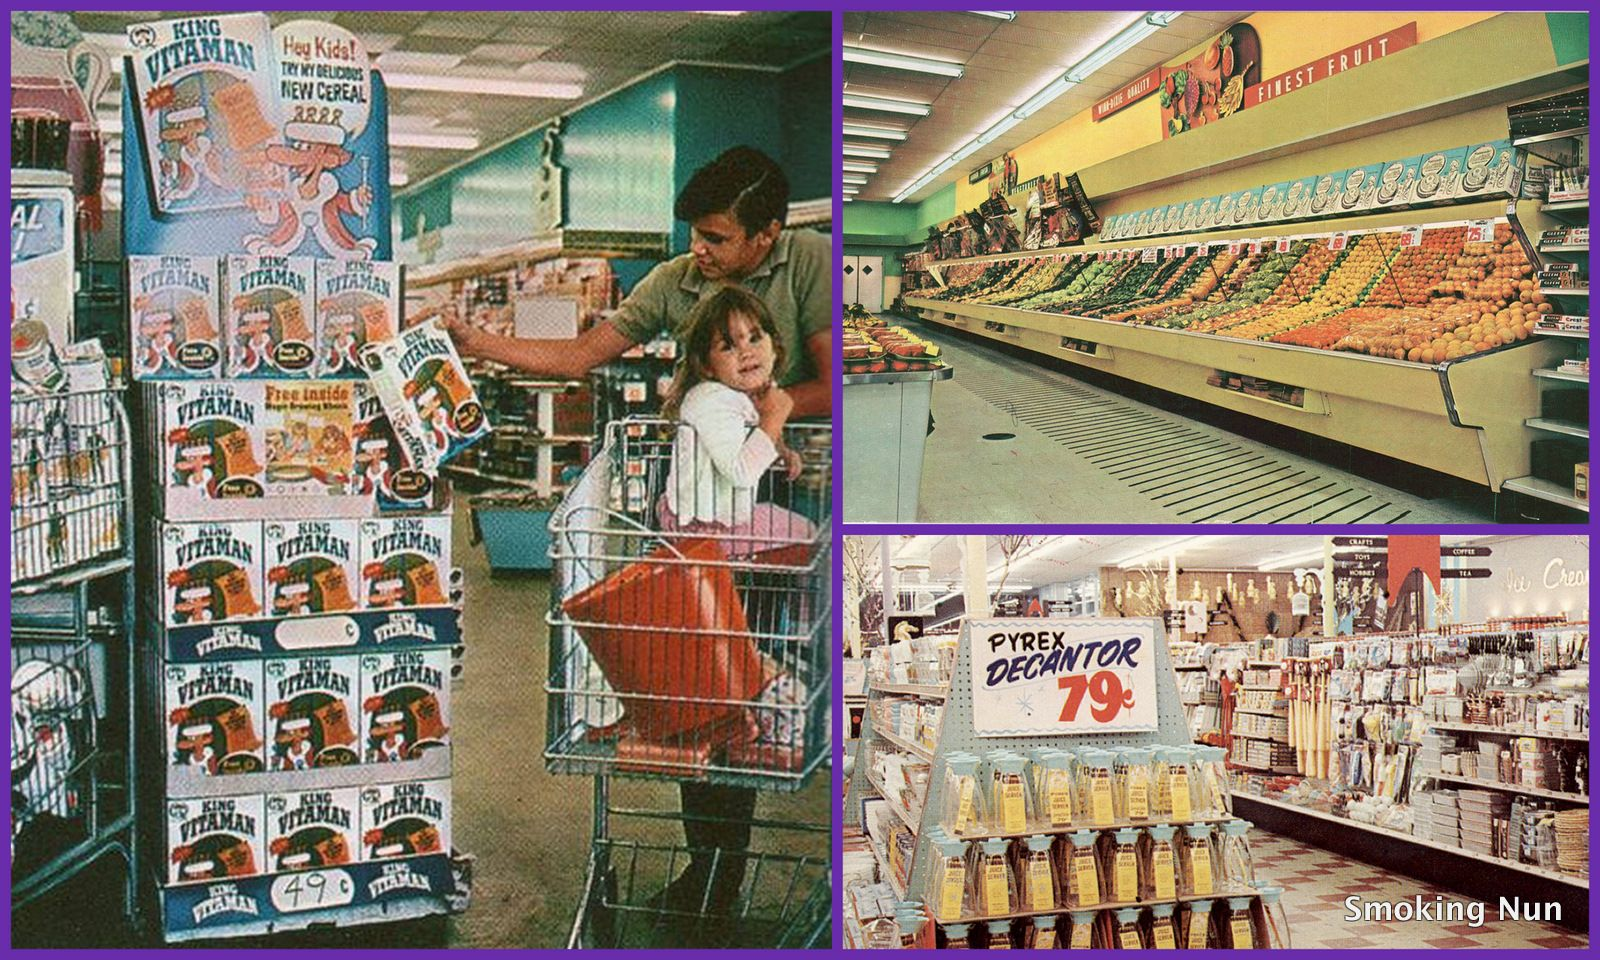 A sweet retro walk down the aisles of 1960s1970s